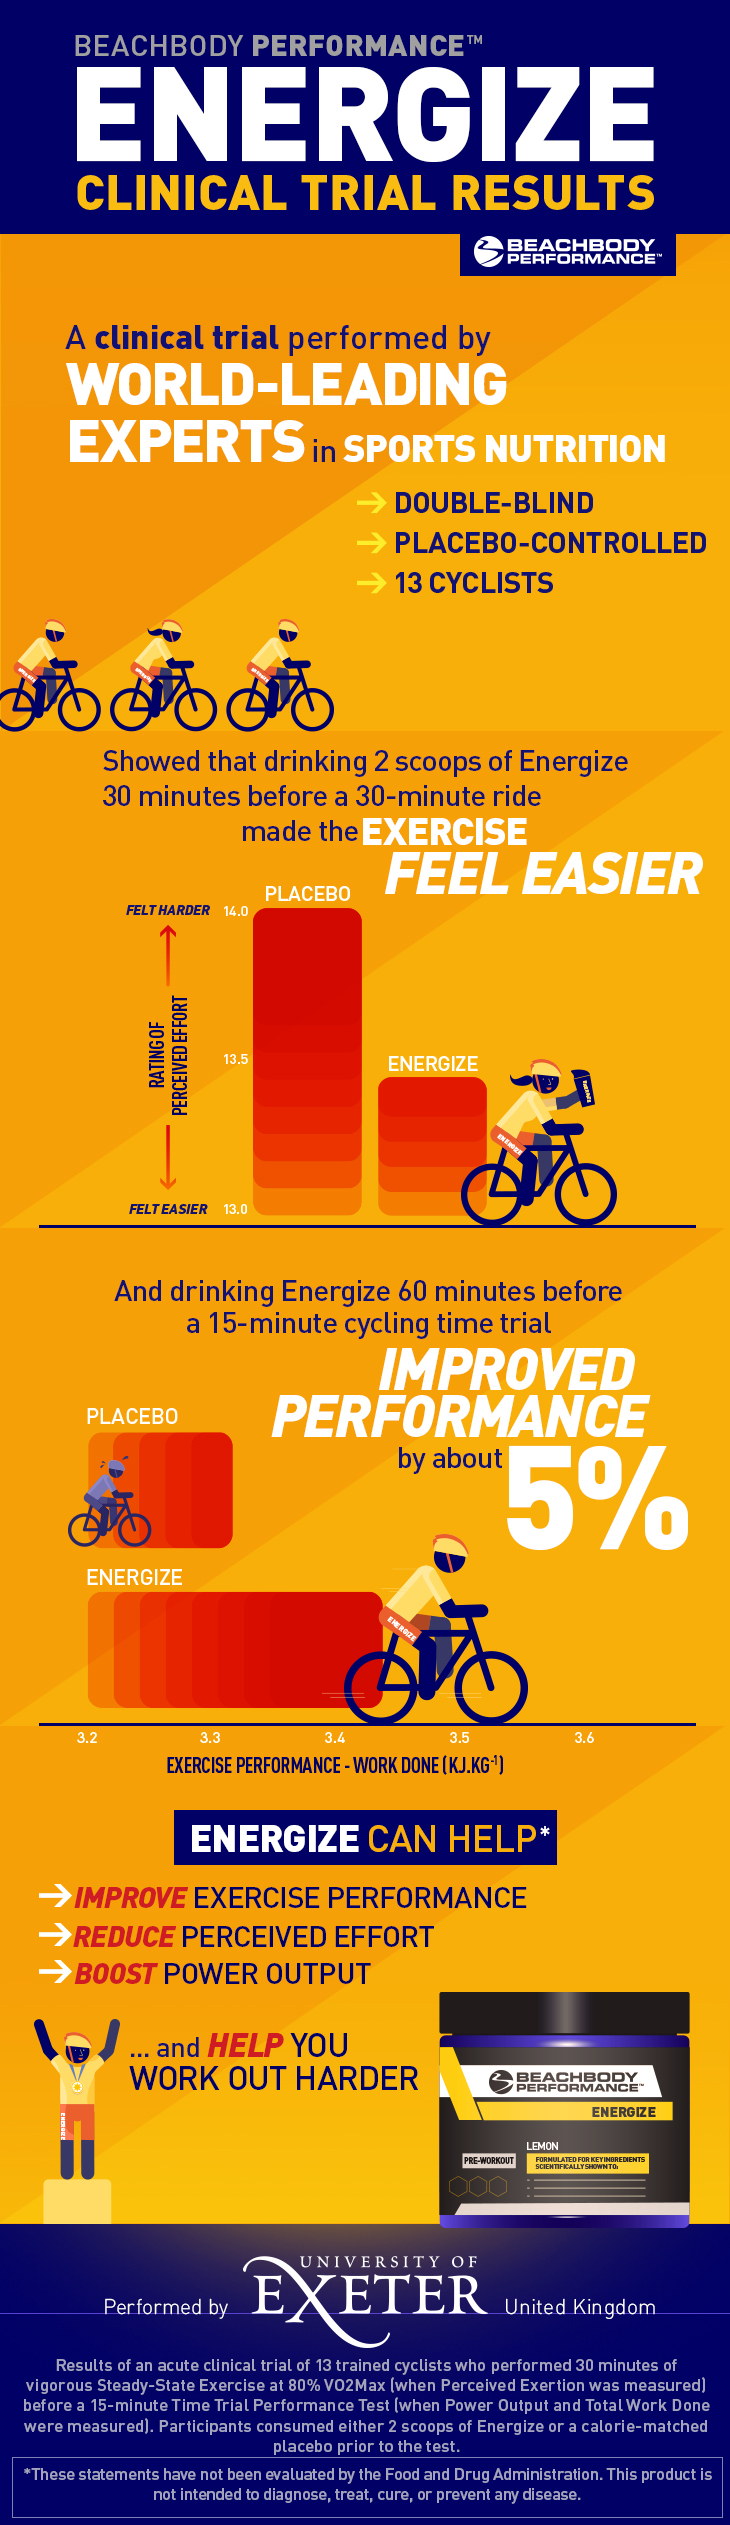 What's Comparable To Beachbody Energize : what's, comparable, beachbody, energize, Beachbody, Performance, Energize, Works